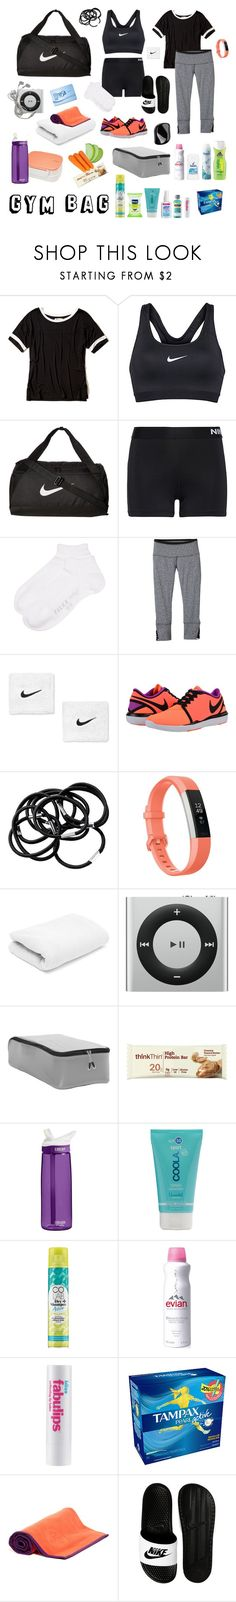 """""""My Gym Bag"""" by ancushe ❤ liked on Polyvore featuring Hollister Co., NIKE, Falke, prAna, H&M, Fitbit, eBags, Takenaka, CamelBak and Tangle Teezer"""